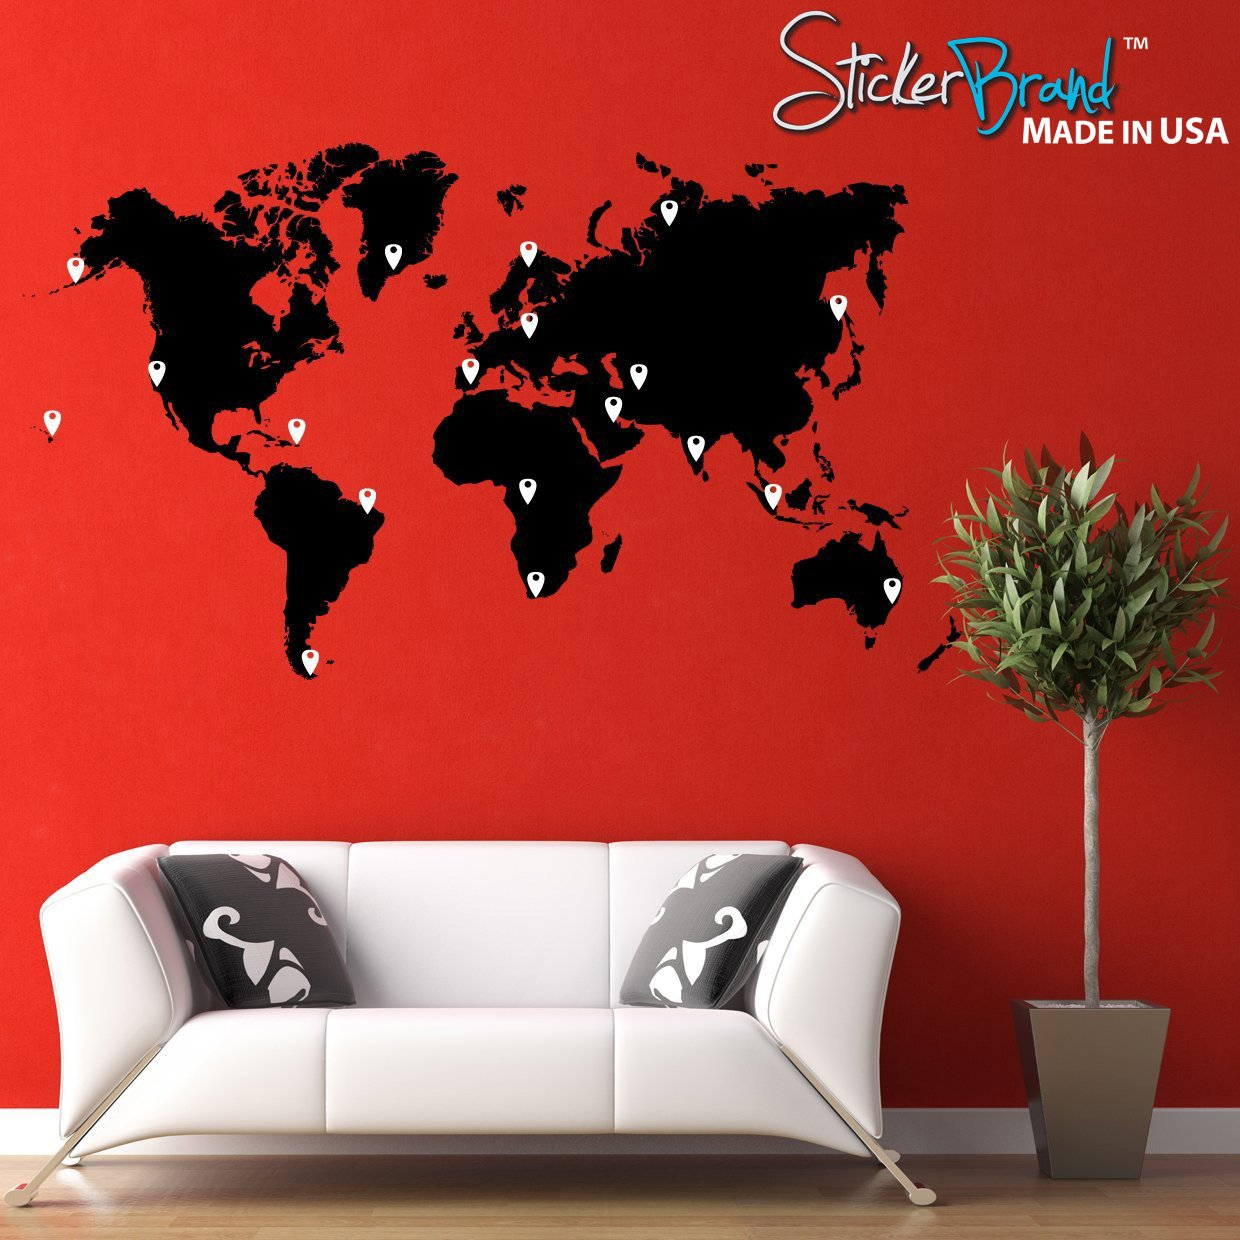 Amazon stickerbrand vinyl wall art world map of earth with amazon stickerbrand vinyl wall art world map of earth with pin drops wall decal sticker black map w red black white grey pins 40 x 70 gumiabroncs Image collections